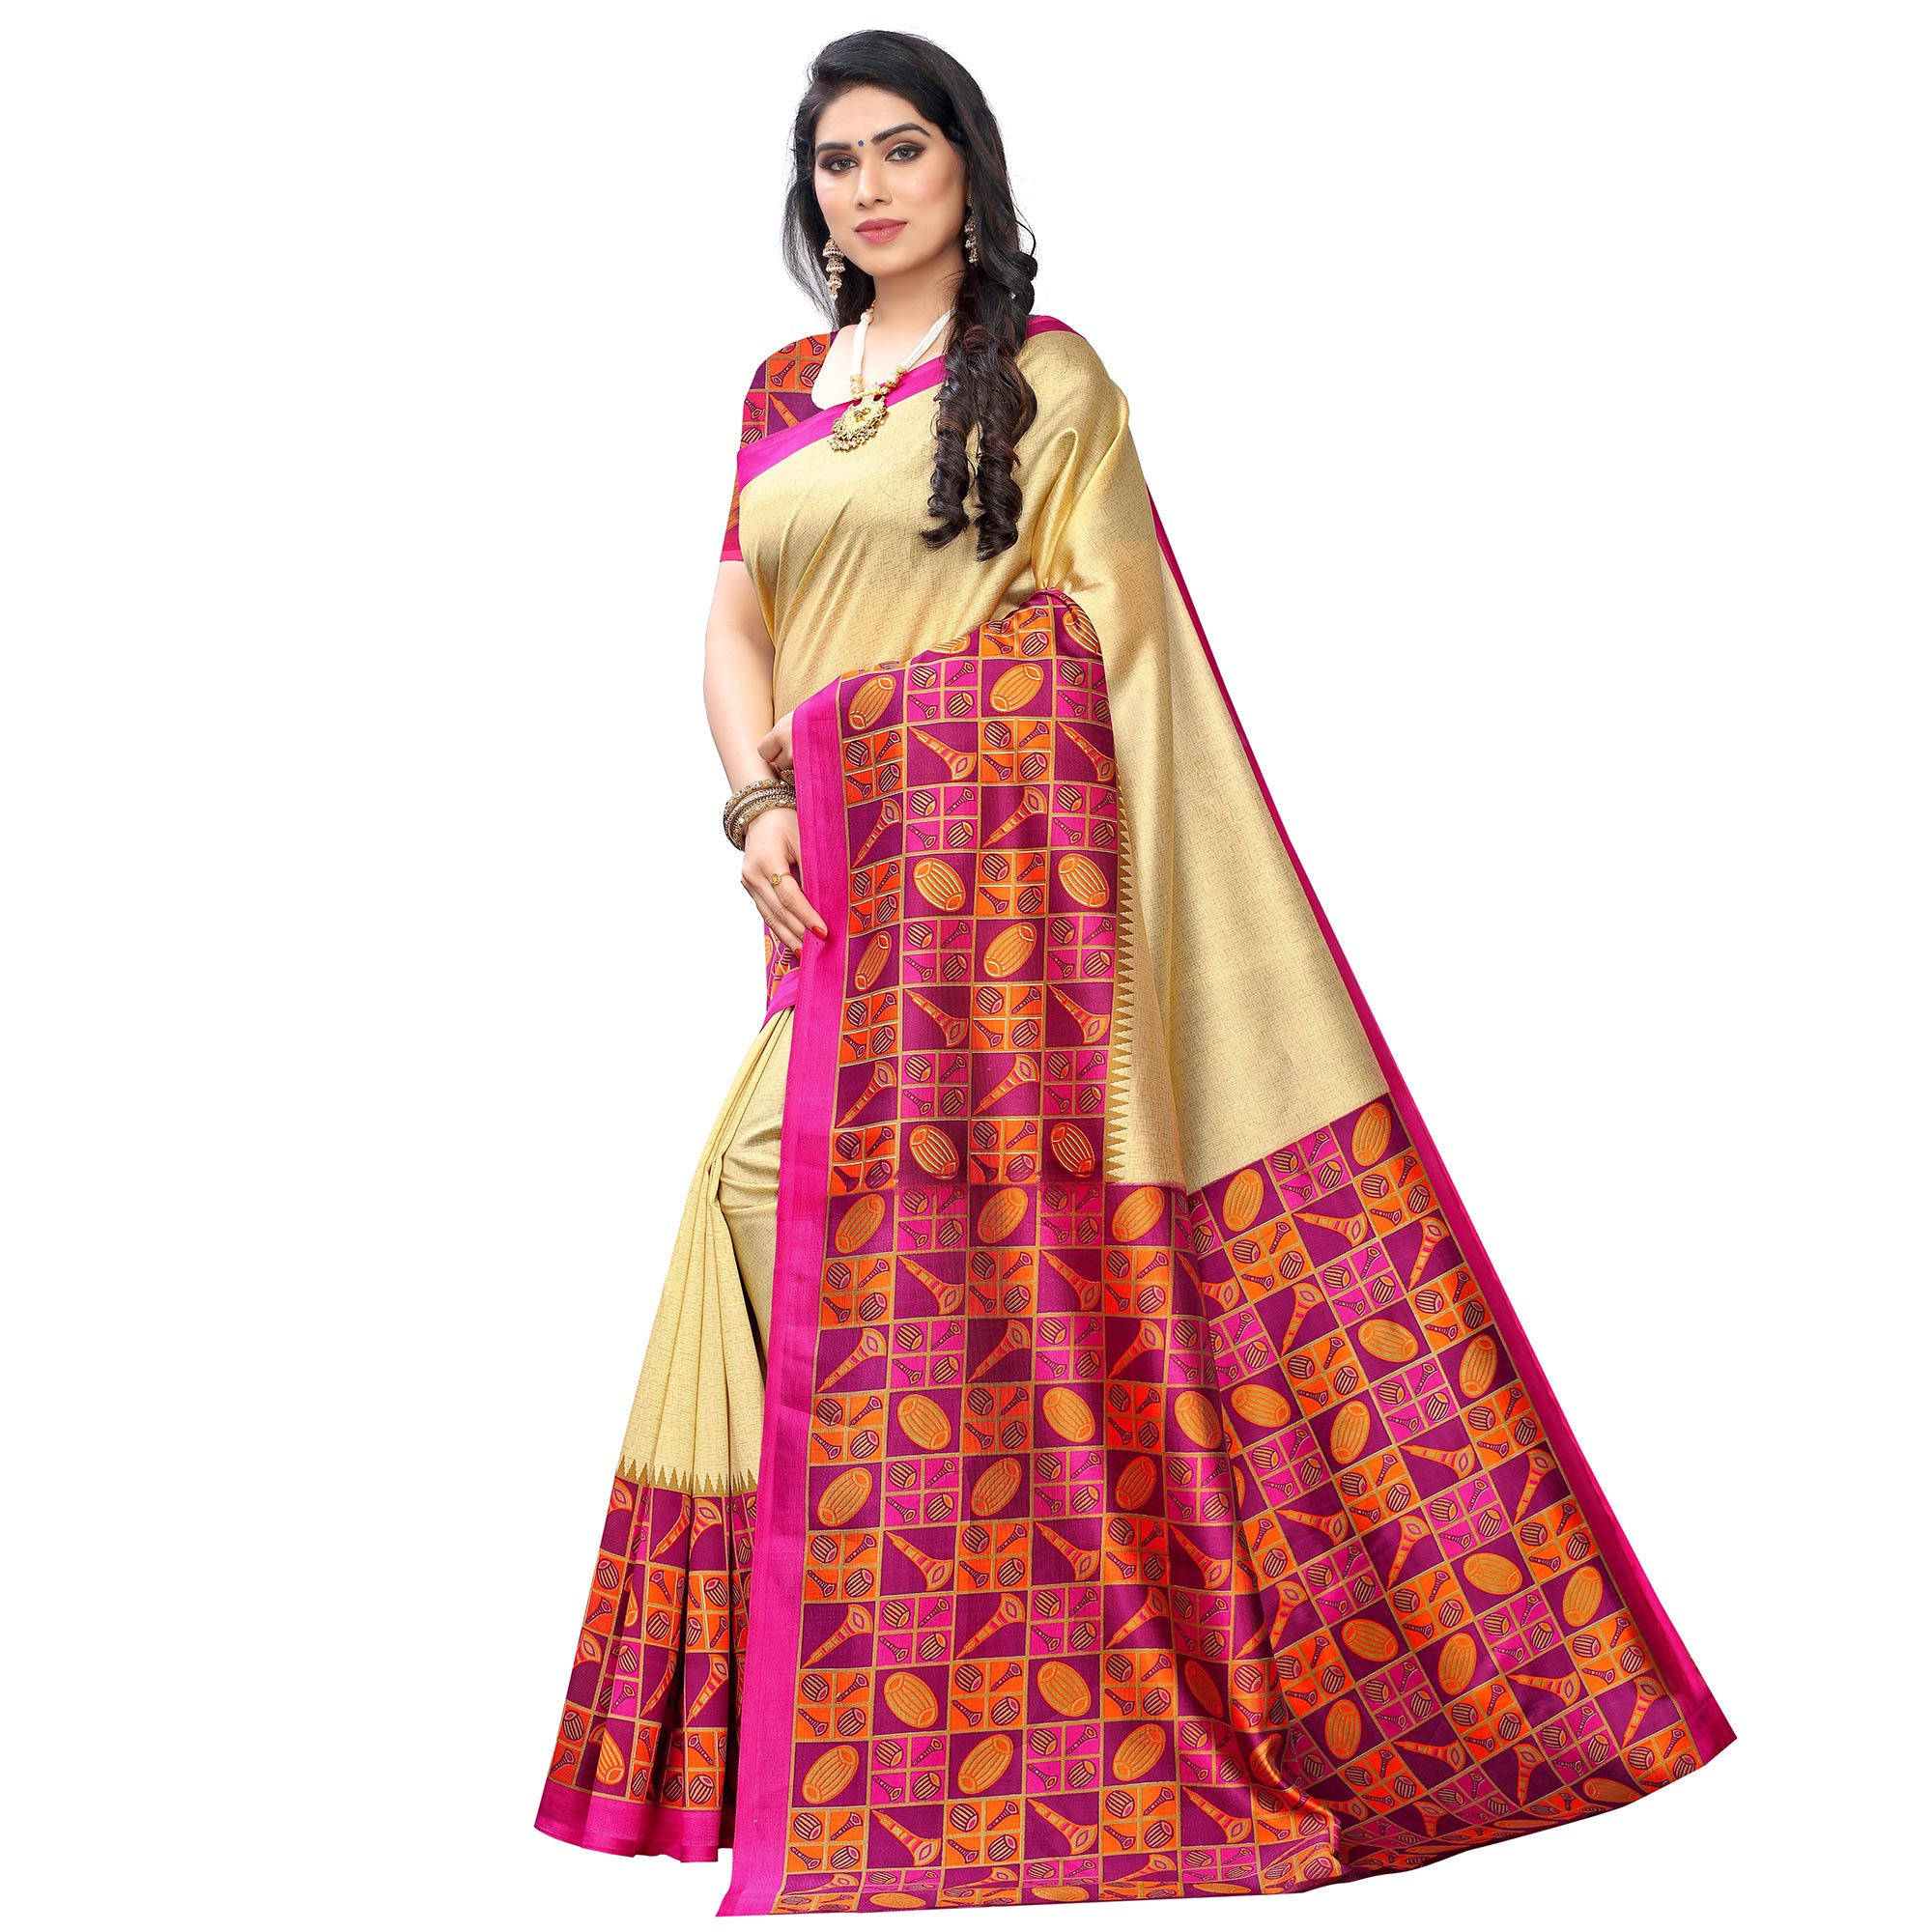 Glowing Gold-Pink Colored Festive Wear Printed Art Silk Saree